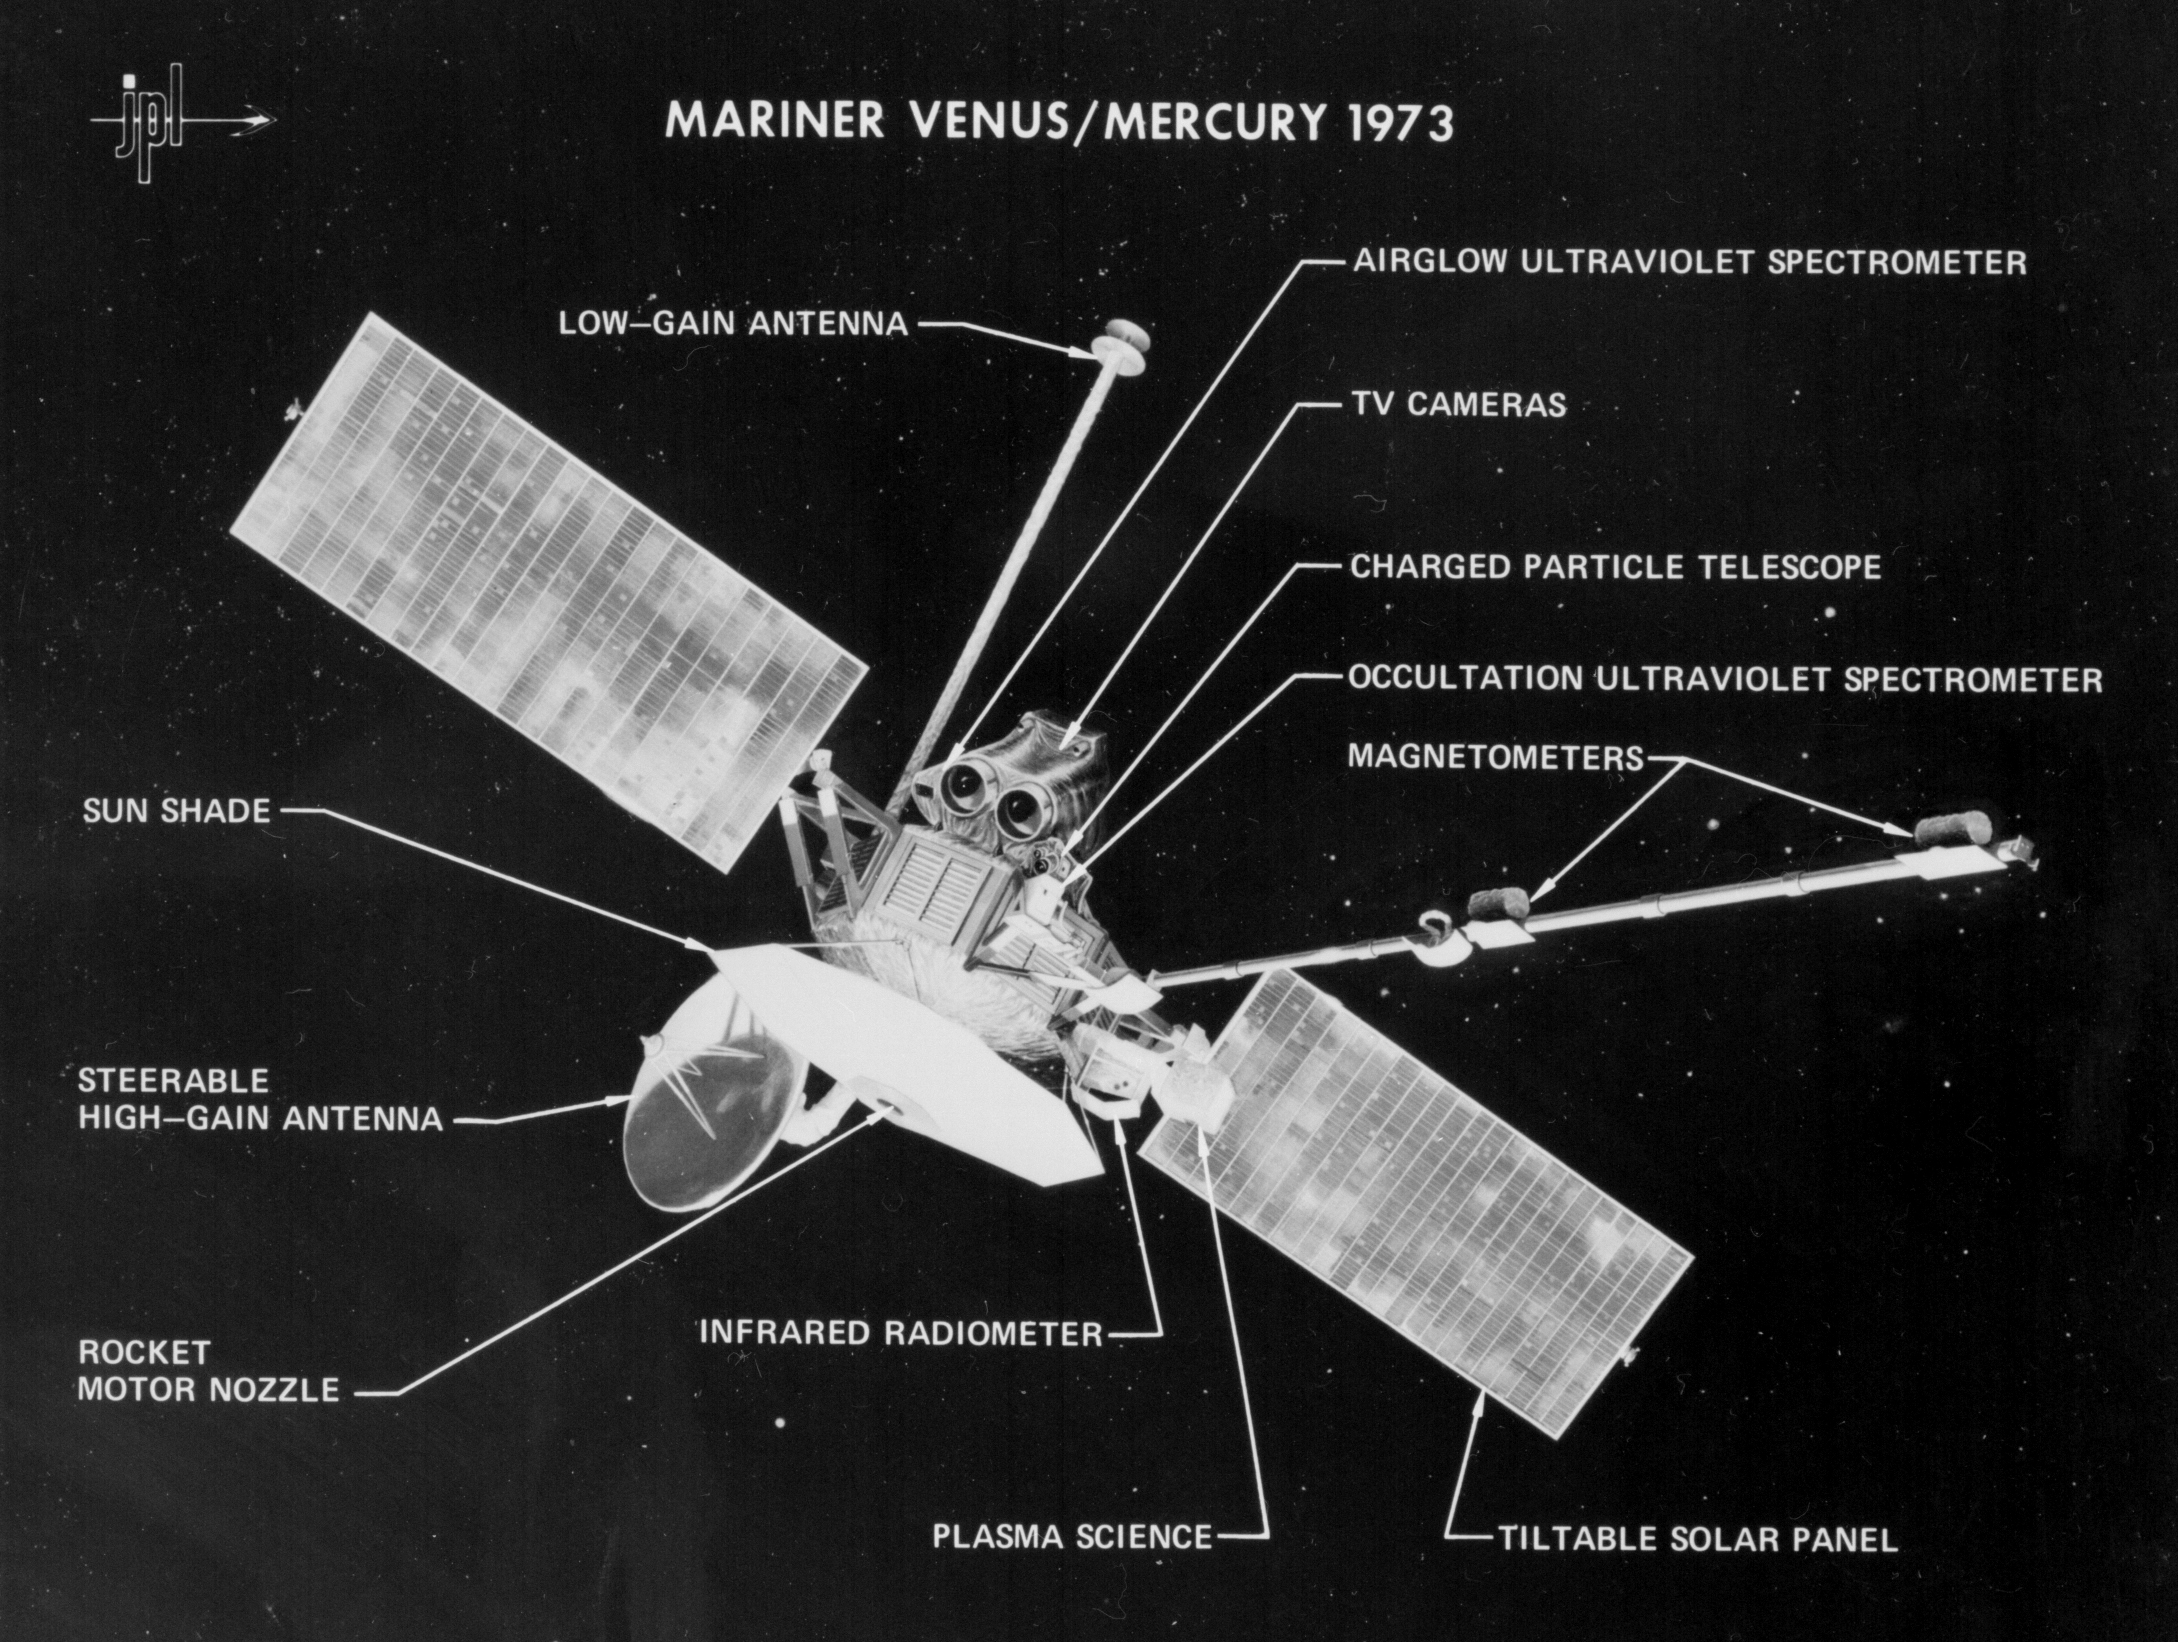 Illustration depicting various parts of the Mariner 10 spacecraft and the science instruments, which were used to study the atmospheric, surface, and physical characteristics of Venus and Mercury.